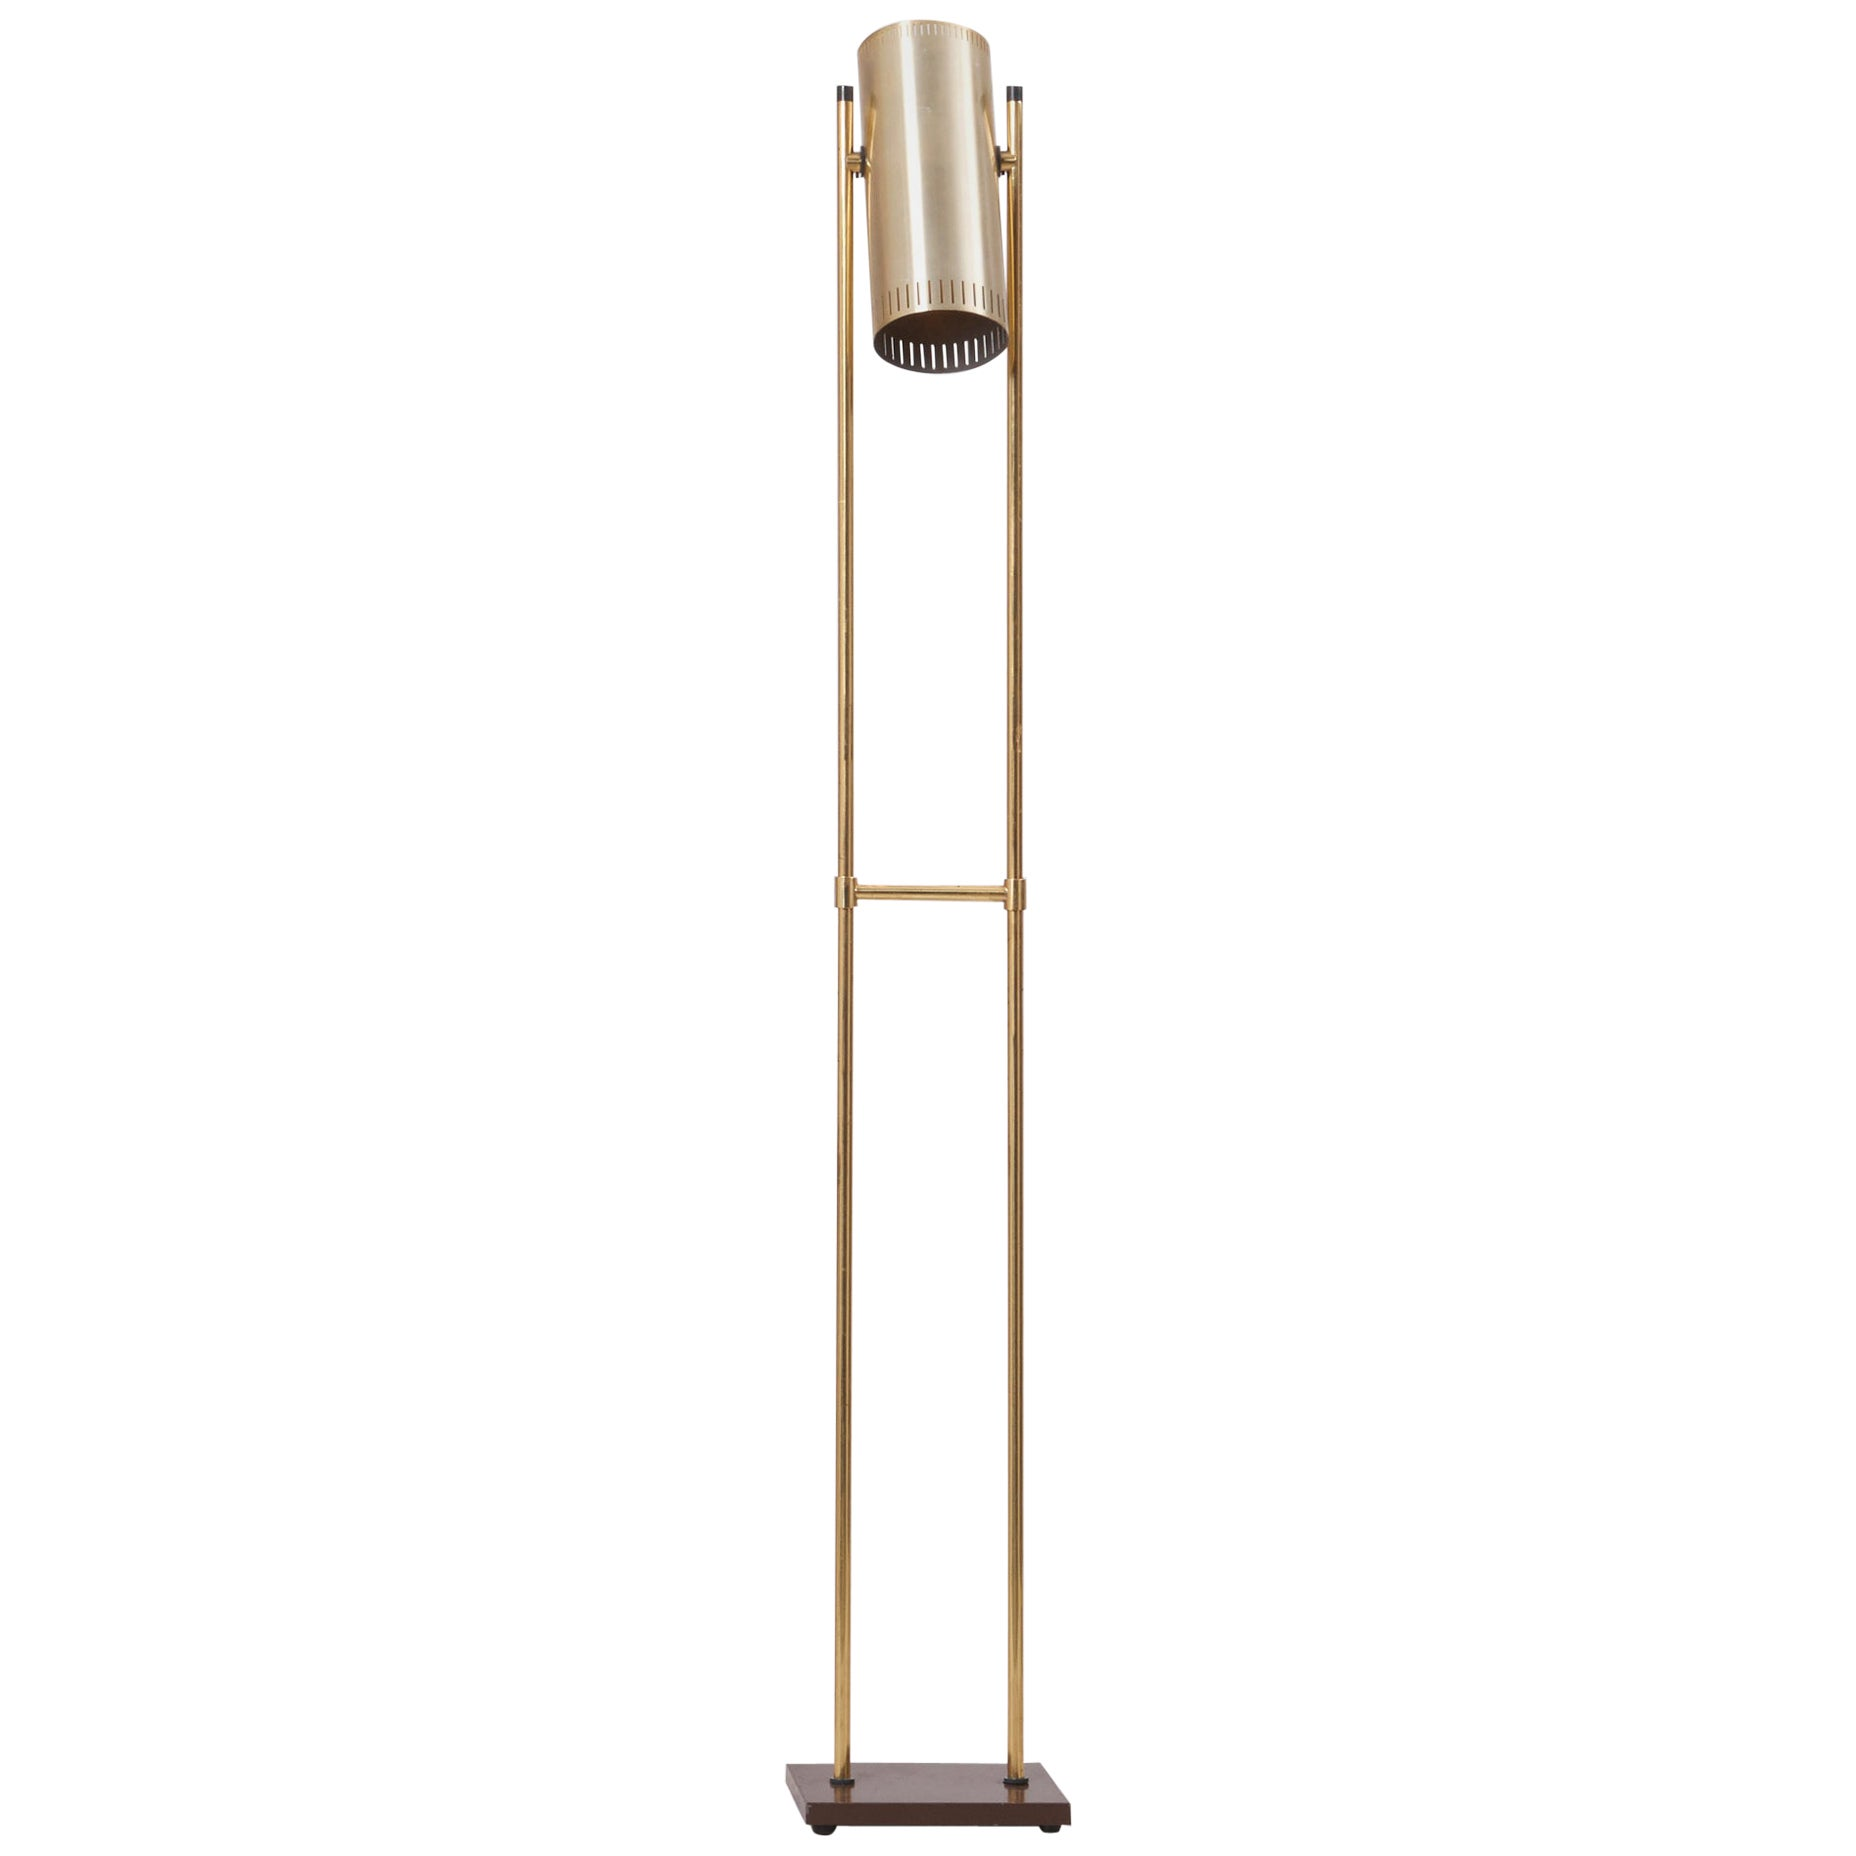 Brass Floor Lamp 'Trombone' by Jo Hammerborg for Fog & Mørup, Denmark, 1960s